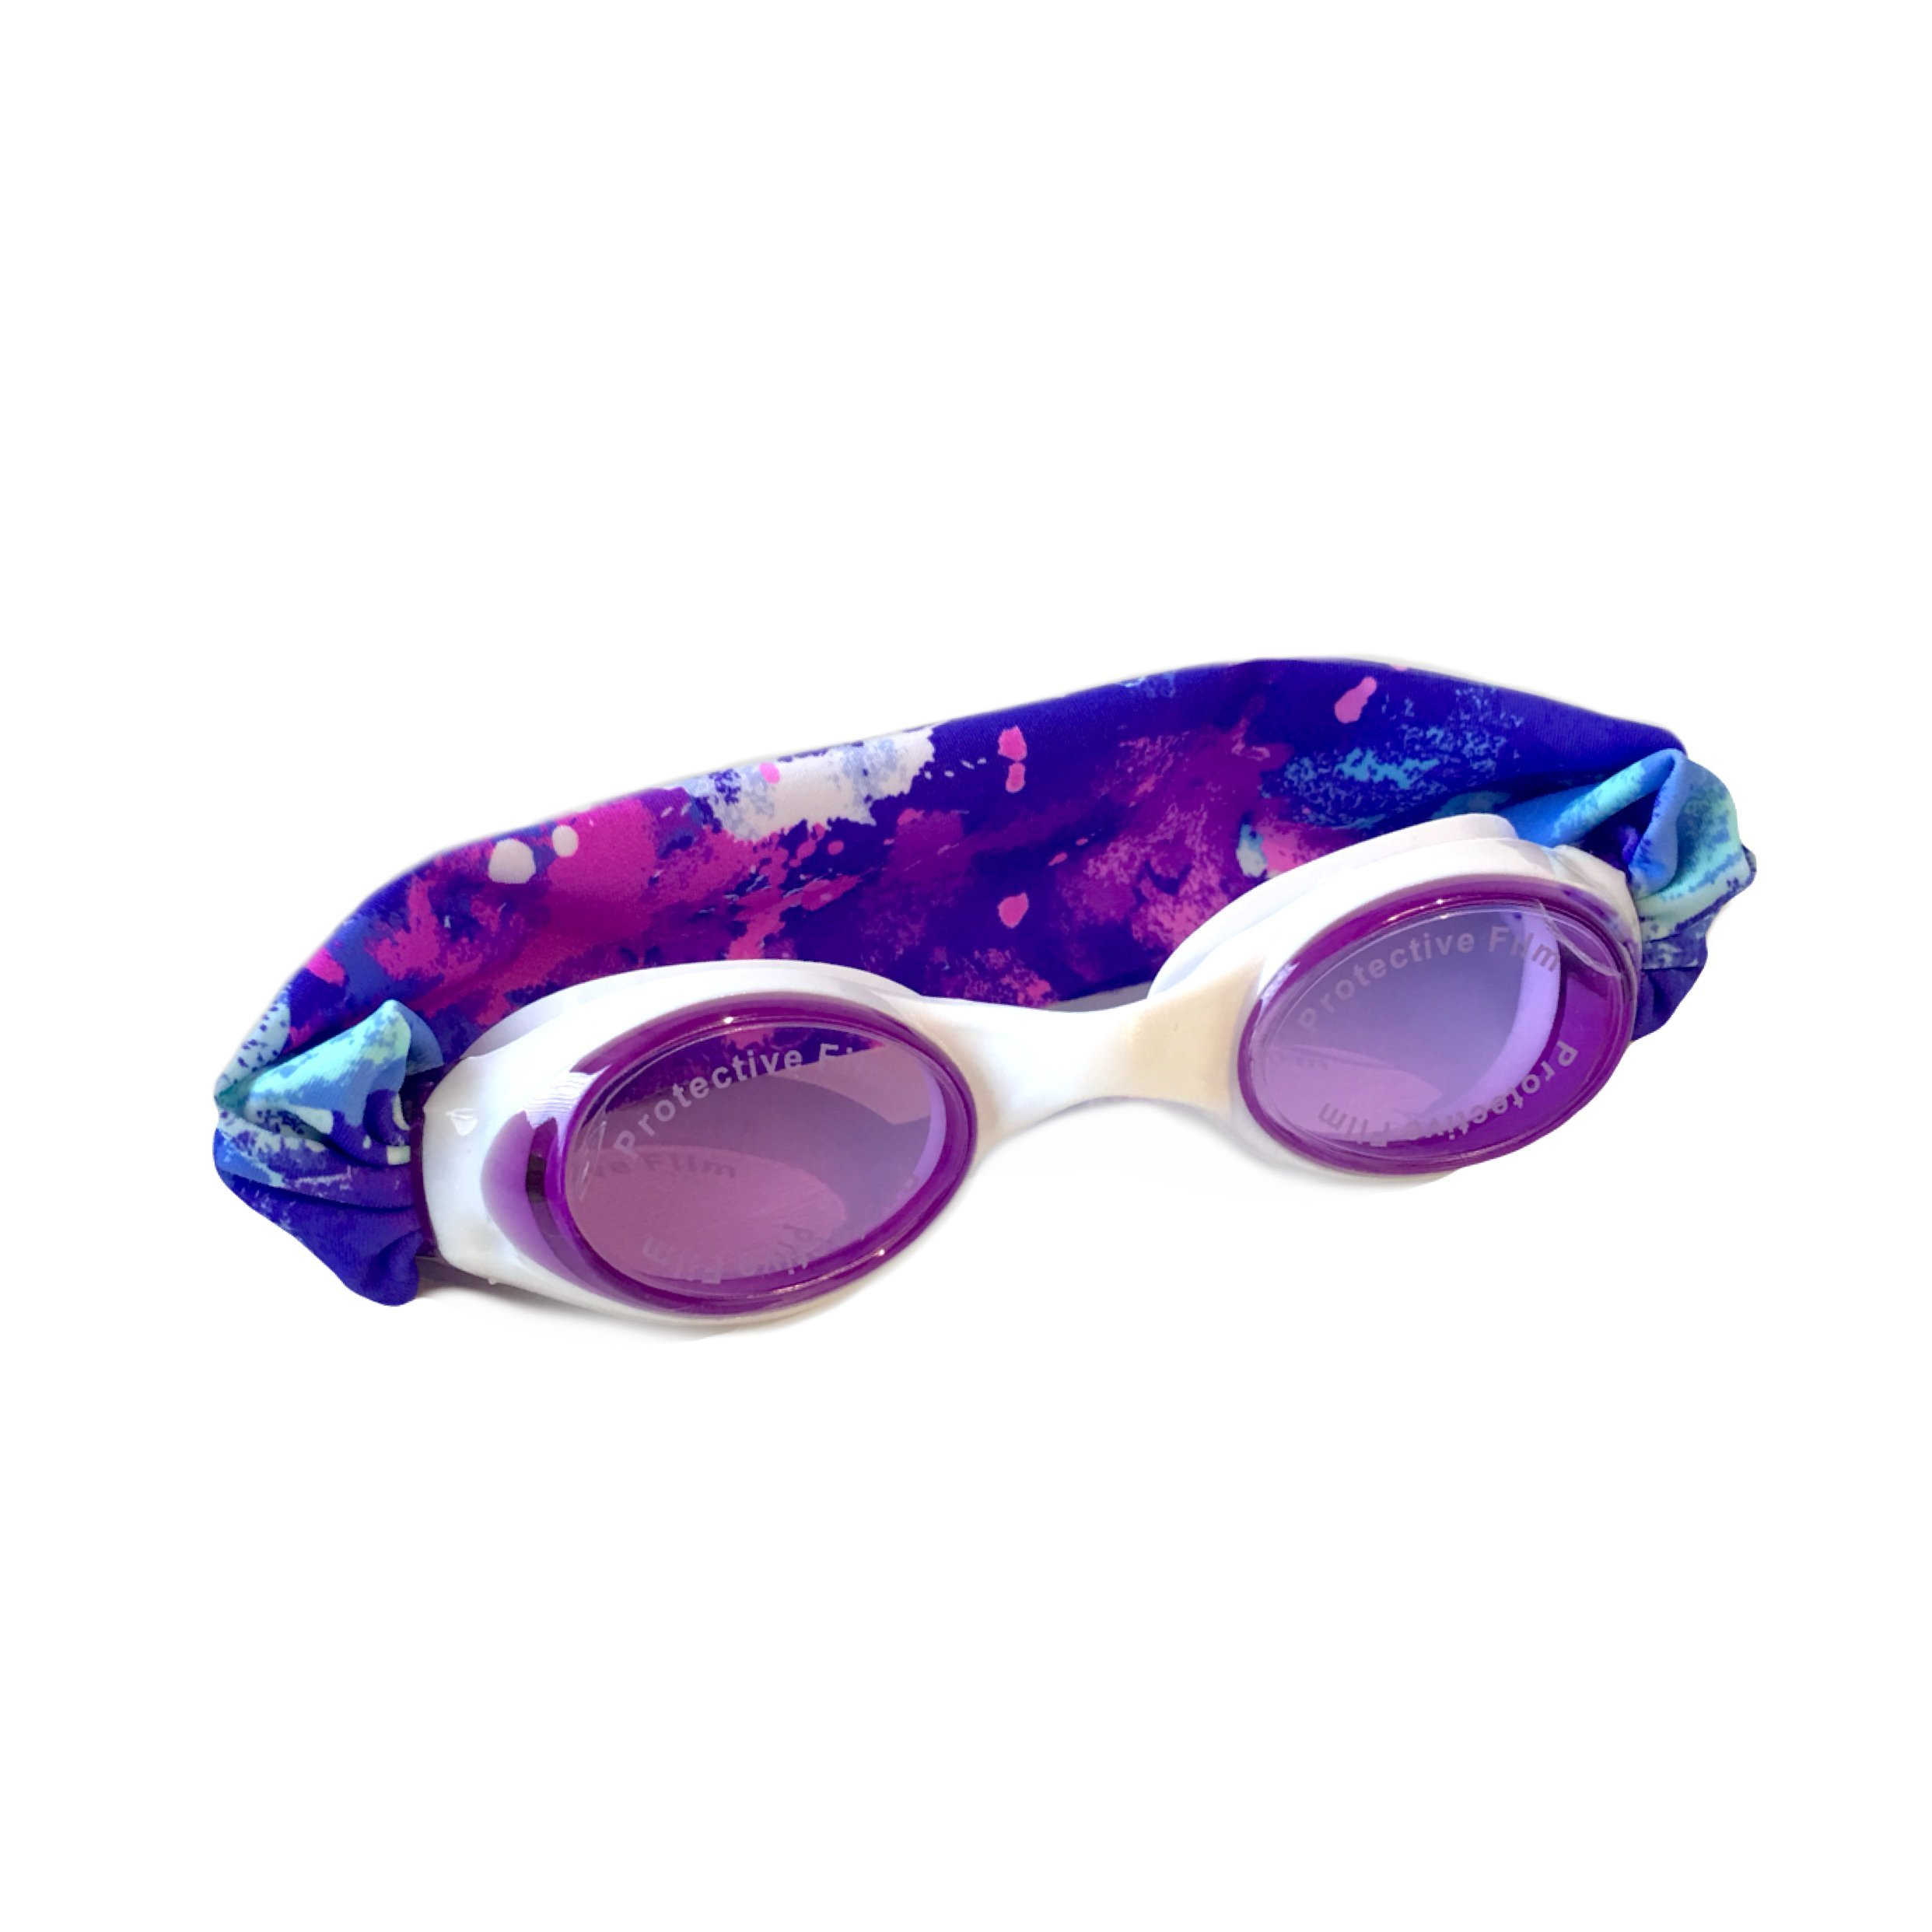 SPLASH Swim Goggles Splash Unicorn Comfortable, Fashionable, Fun - Fits Kids & Adults - Won't Pull Your Hair - Easy to Use - High Visibility Anti-Fog Lenses - Patent Pending